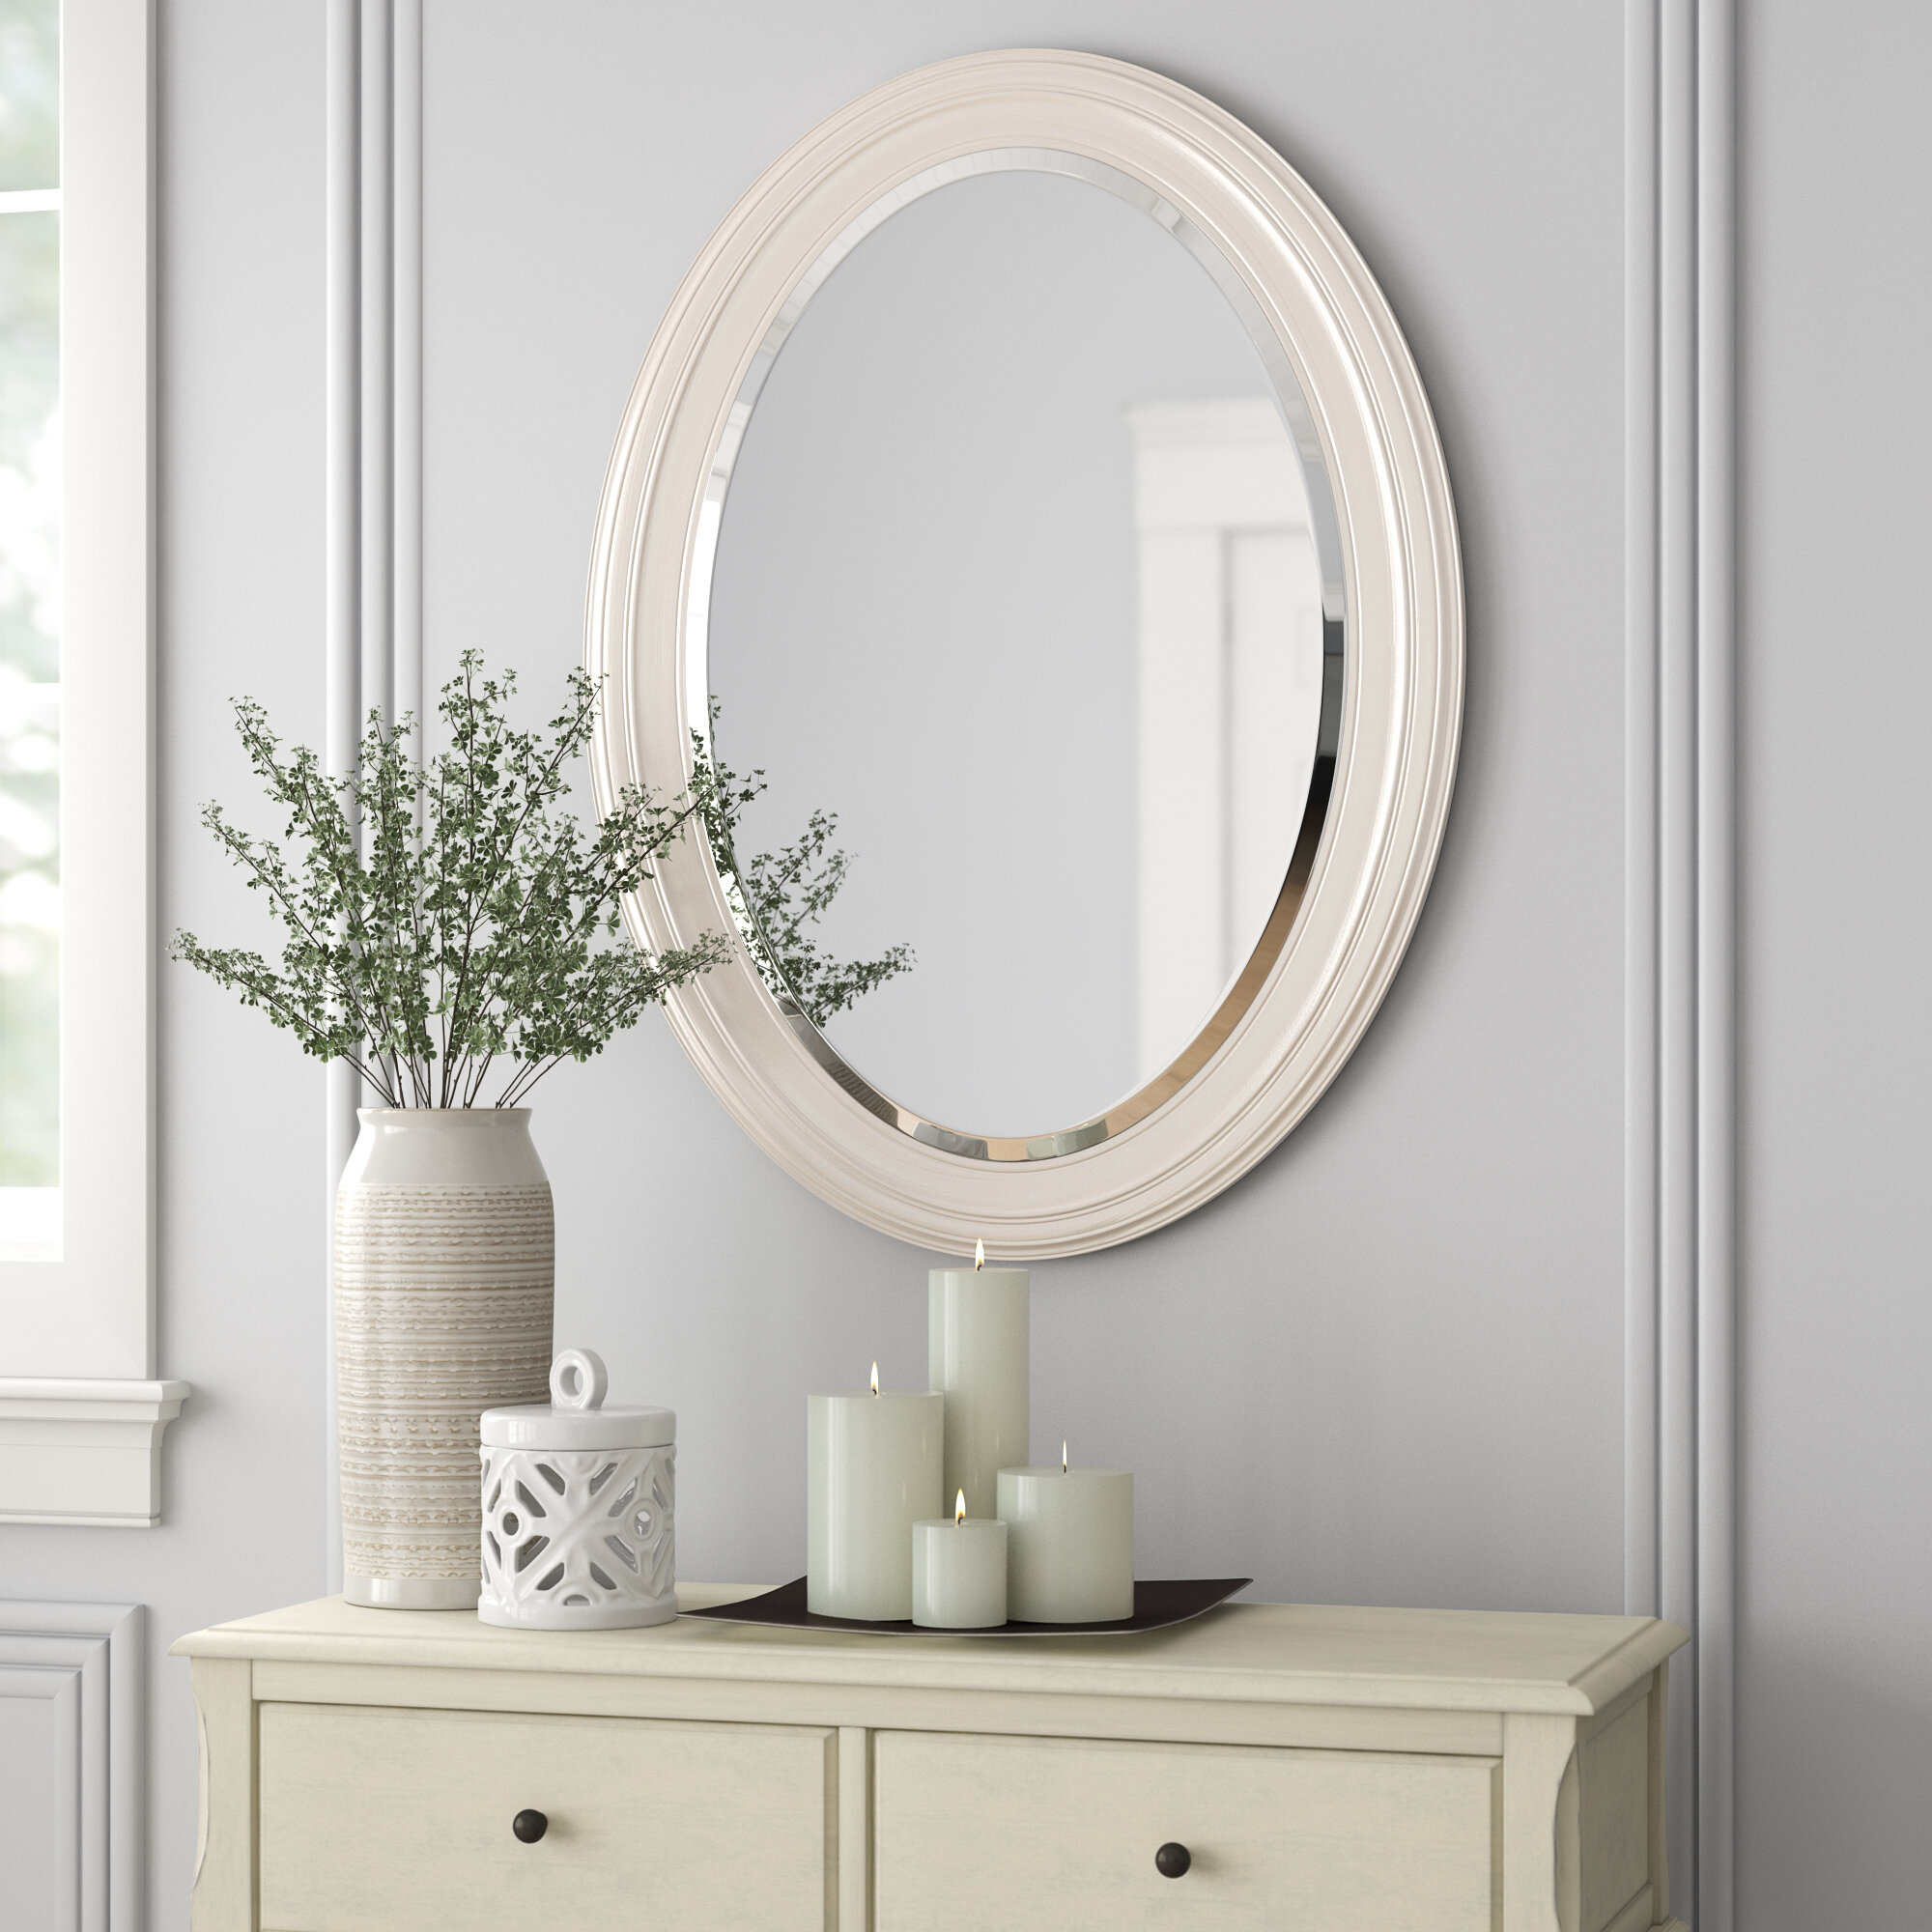 Pfister Oval Wood Wall Mirror Pertaining To Pfister Oval Wood Wall Mirrors (Image 16 of 20)